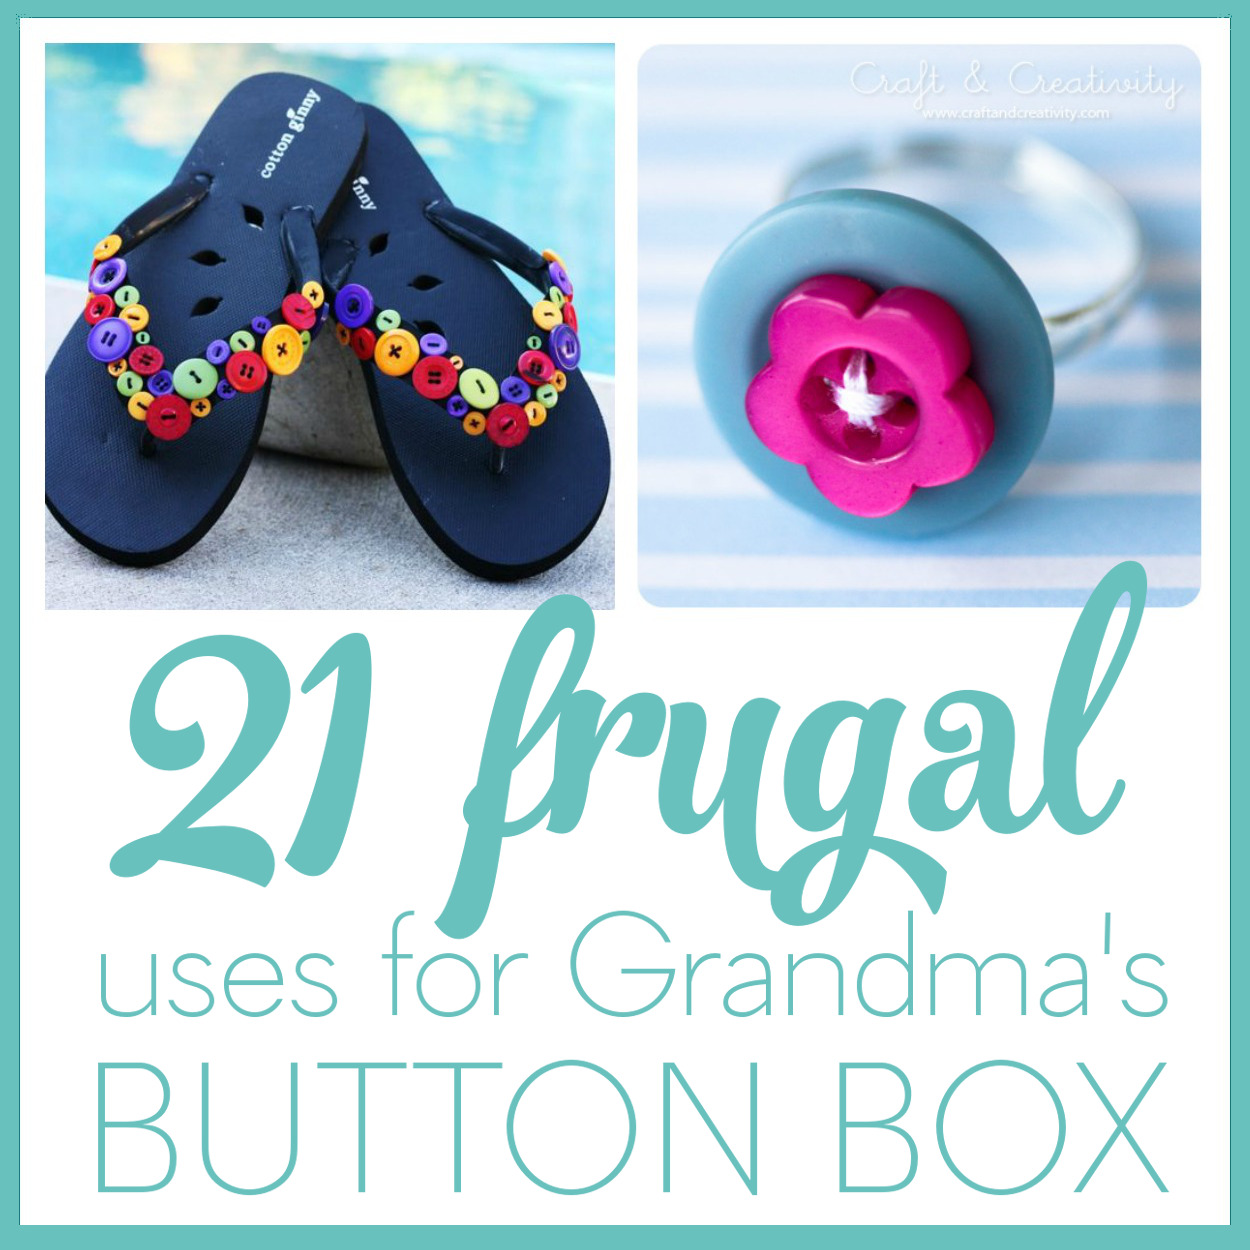 95865949f 21 Frugal Uses for Old Buttons